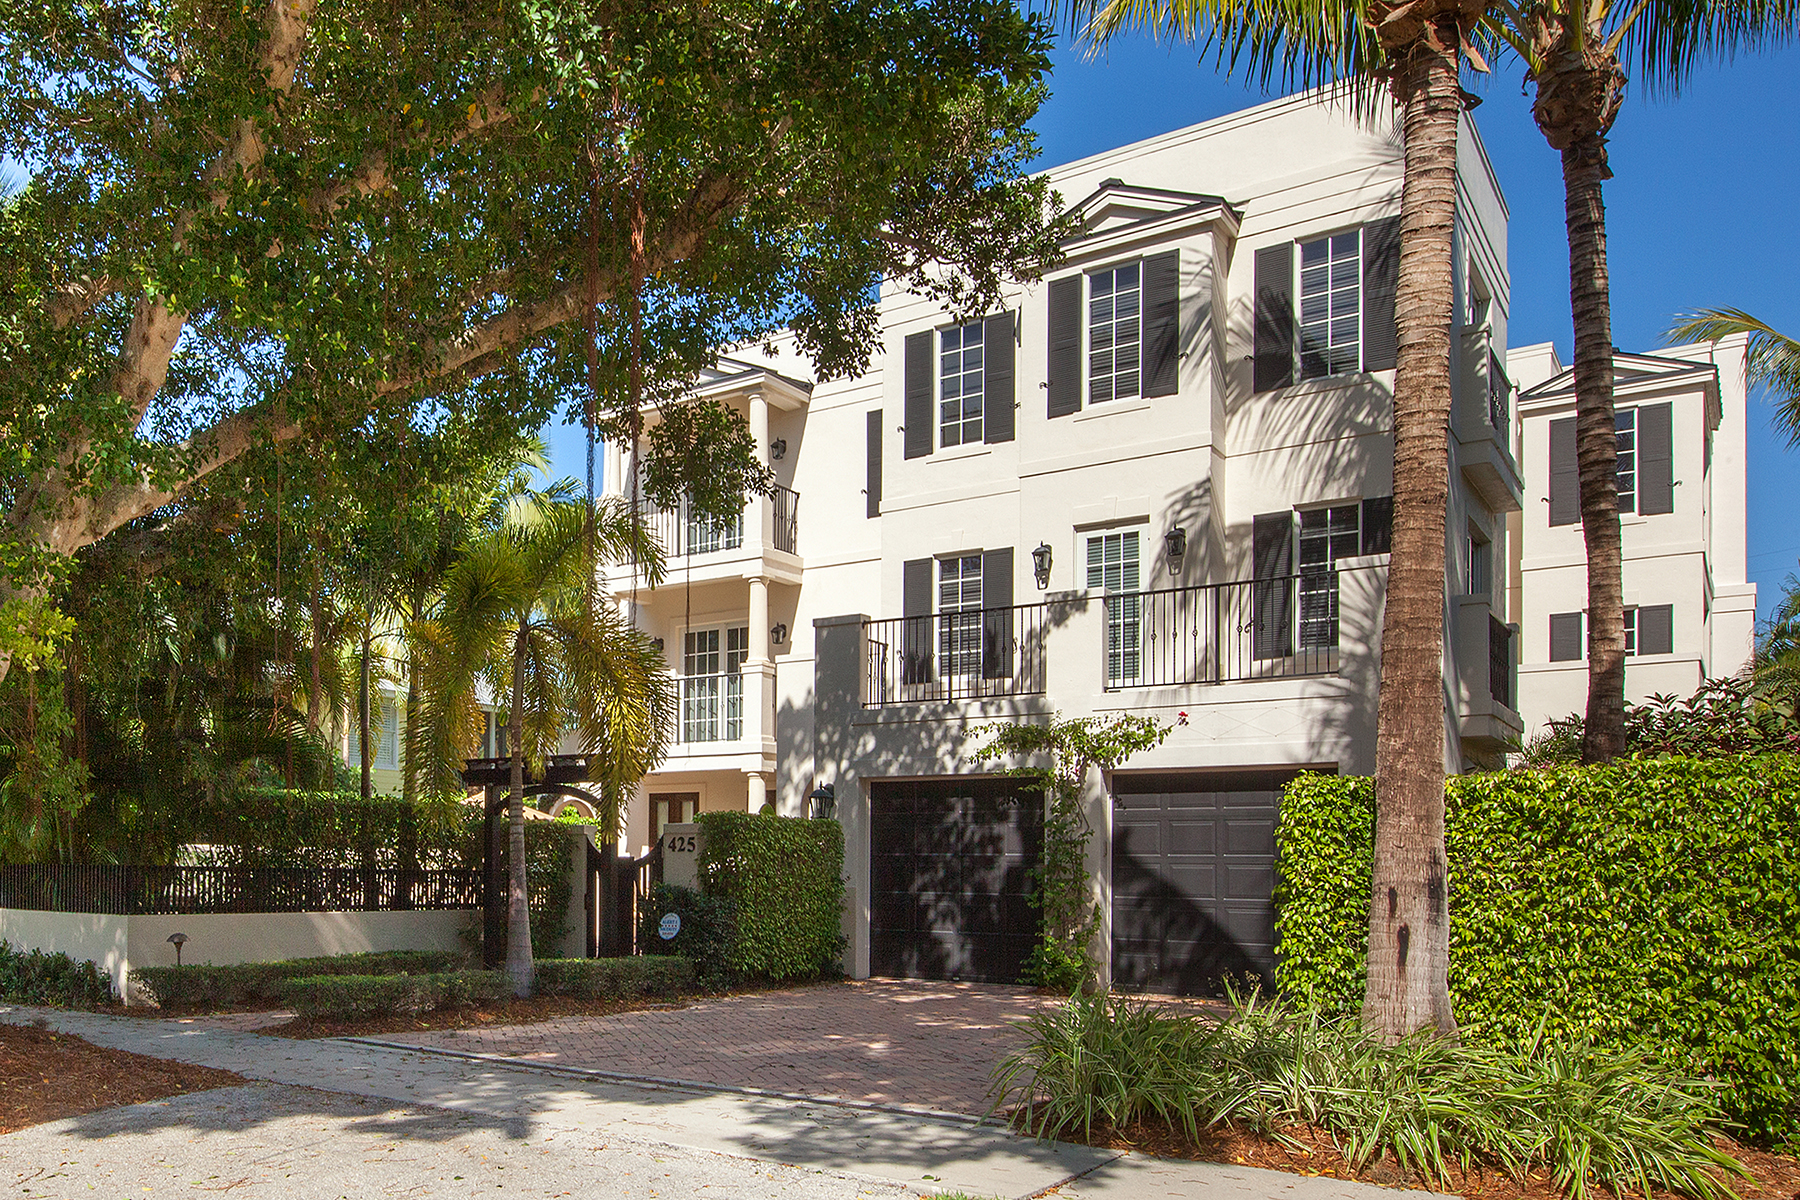 Townhouse for Sale at OLD NAPLES - ORCHID PLACE 425 3rd Ave S 2 Naples, Florida, 34102 United States